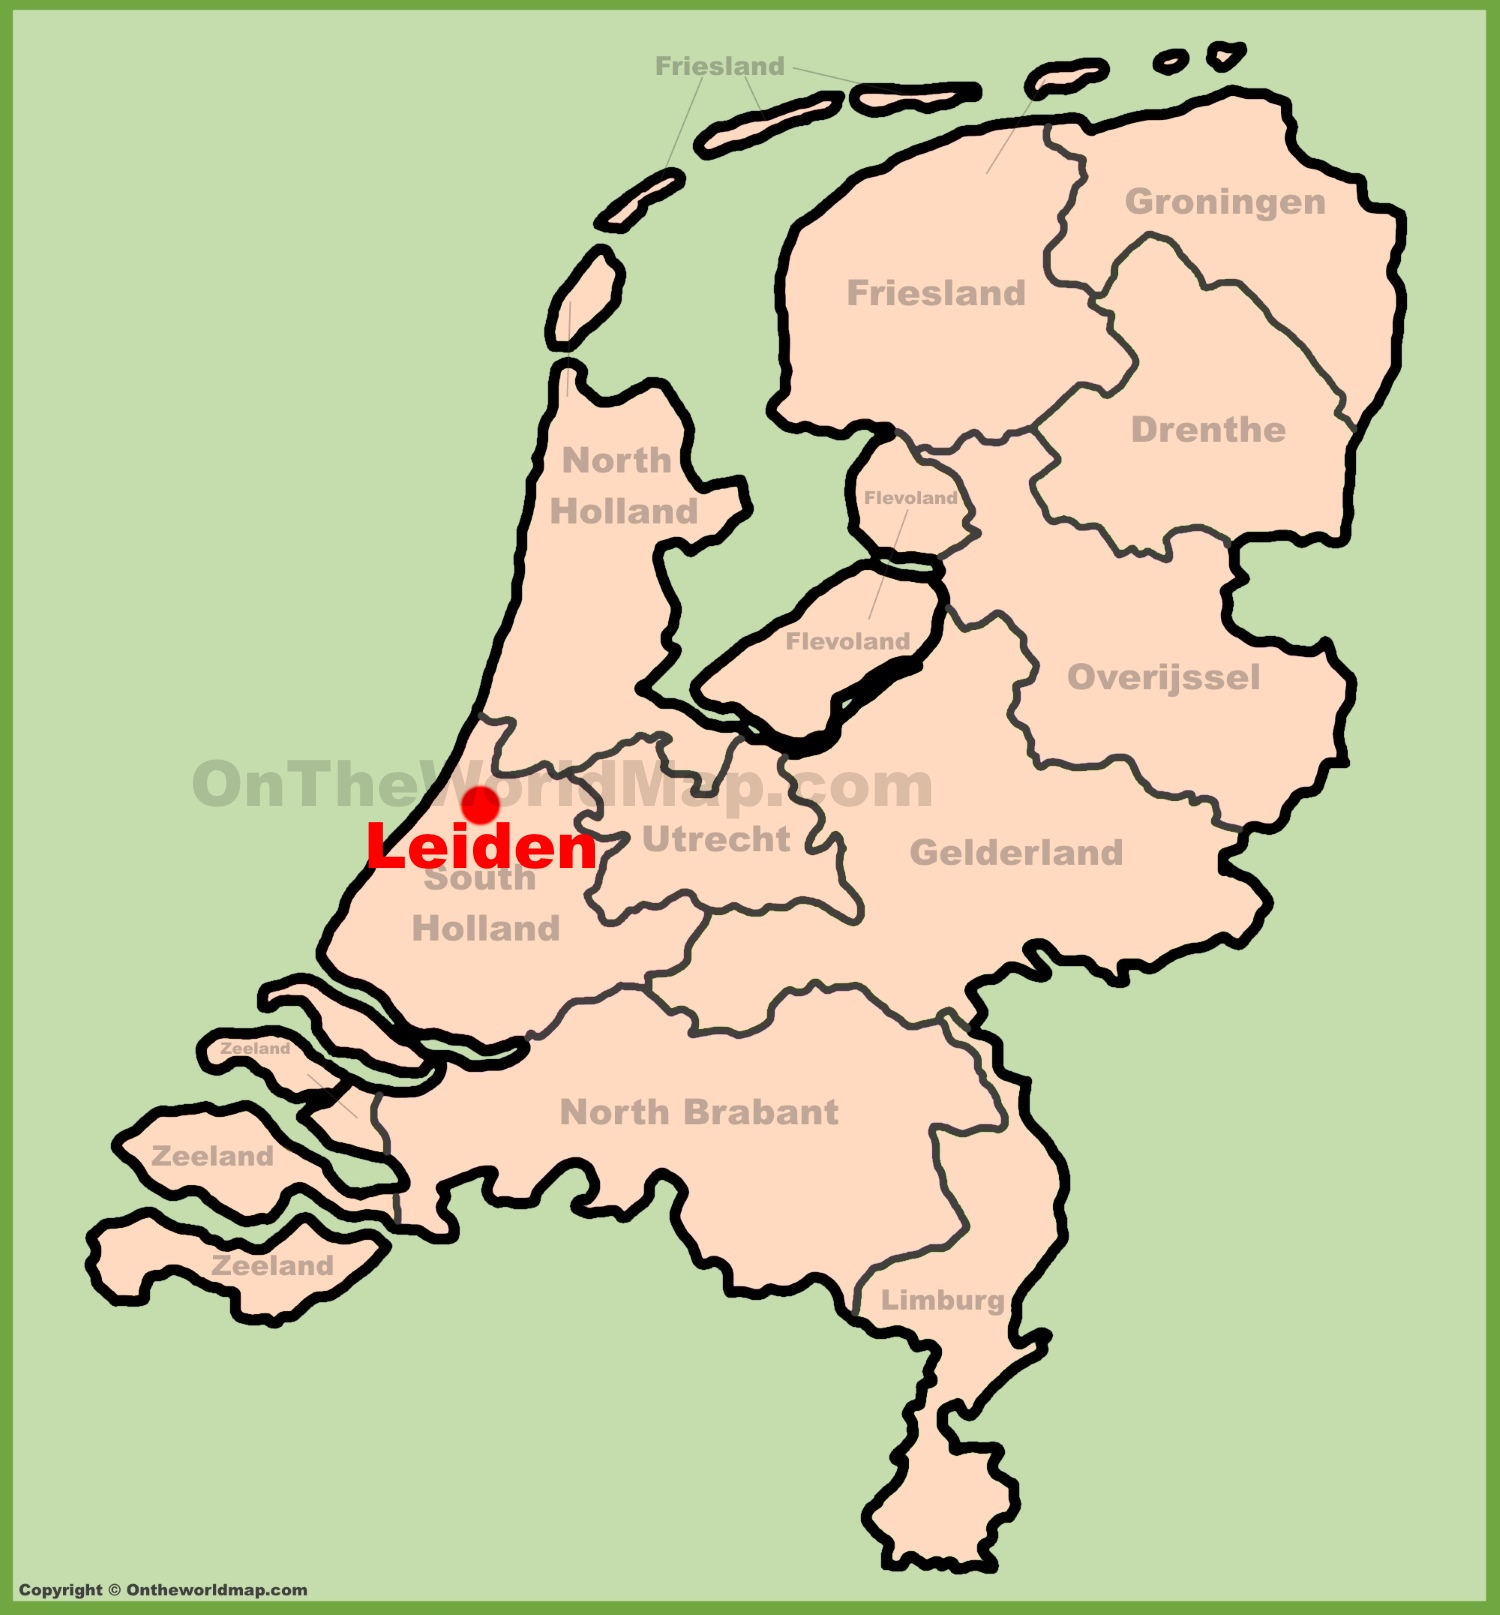 Leiden location on the Netherlands map